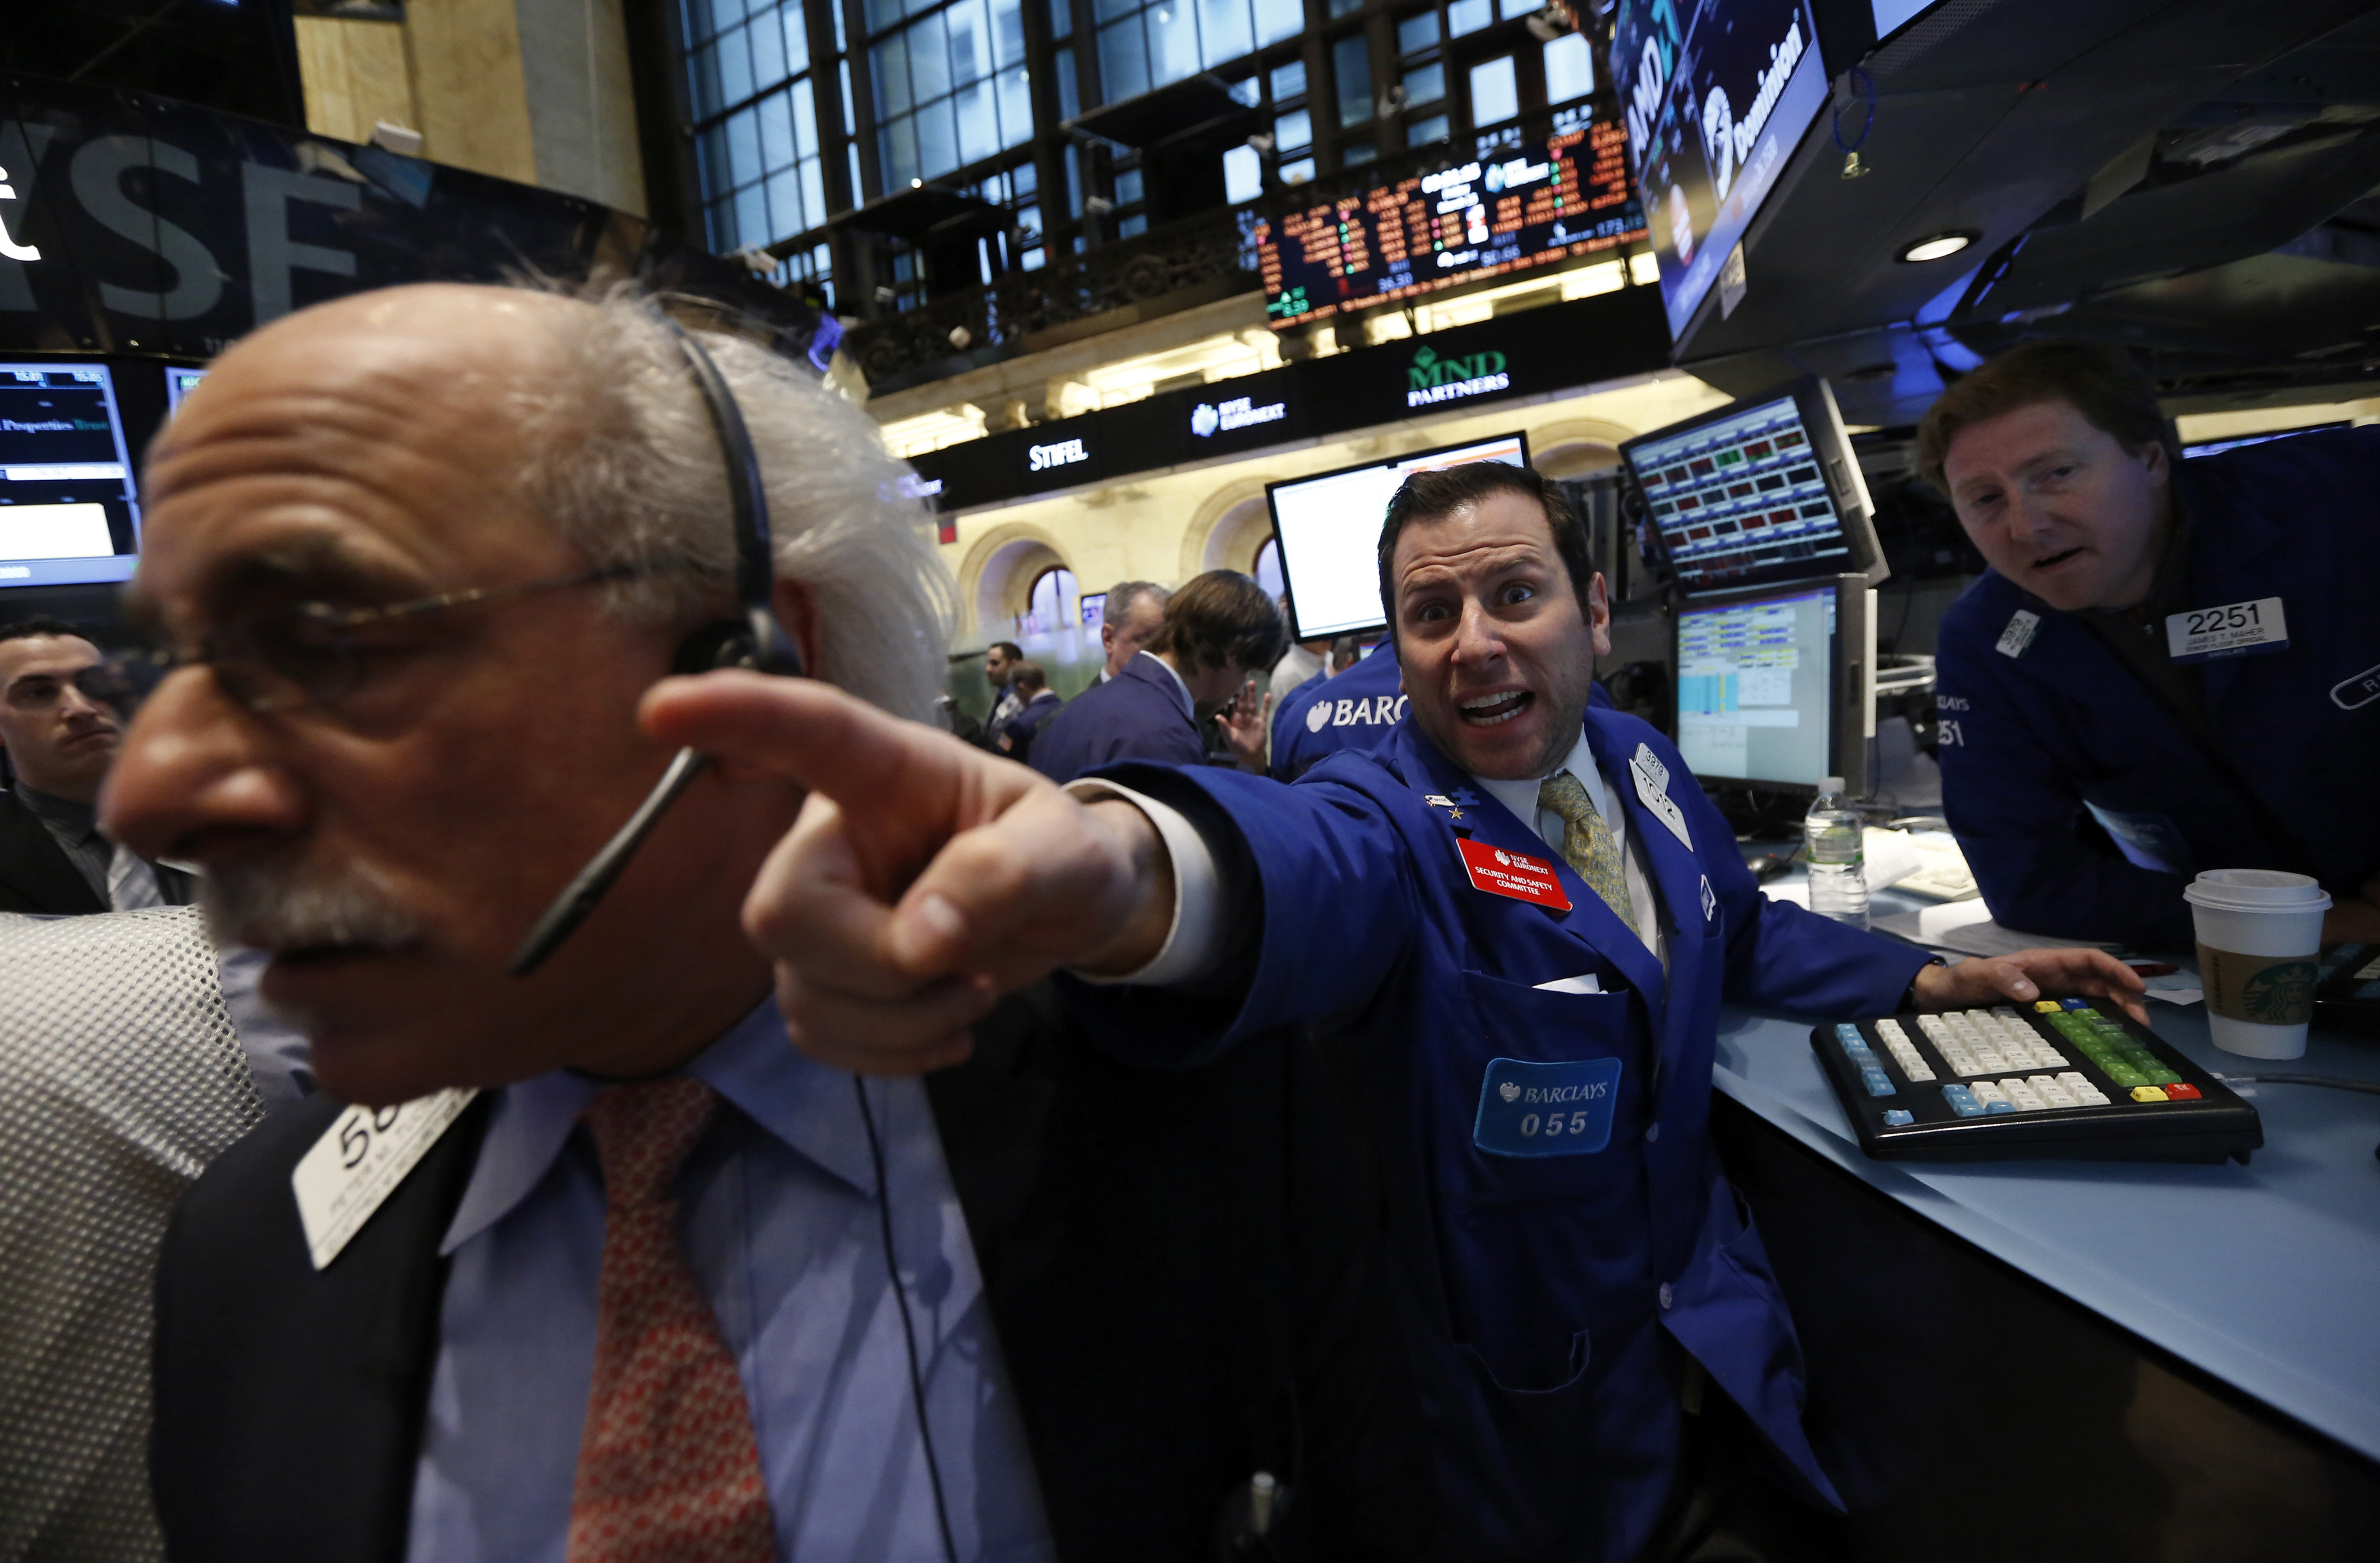 Wall_street_trader_freaking_out_reuters-